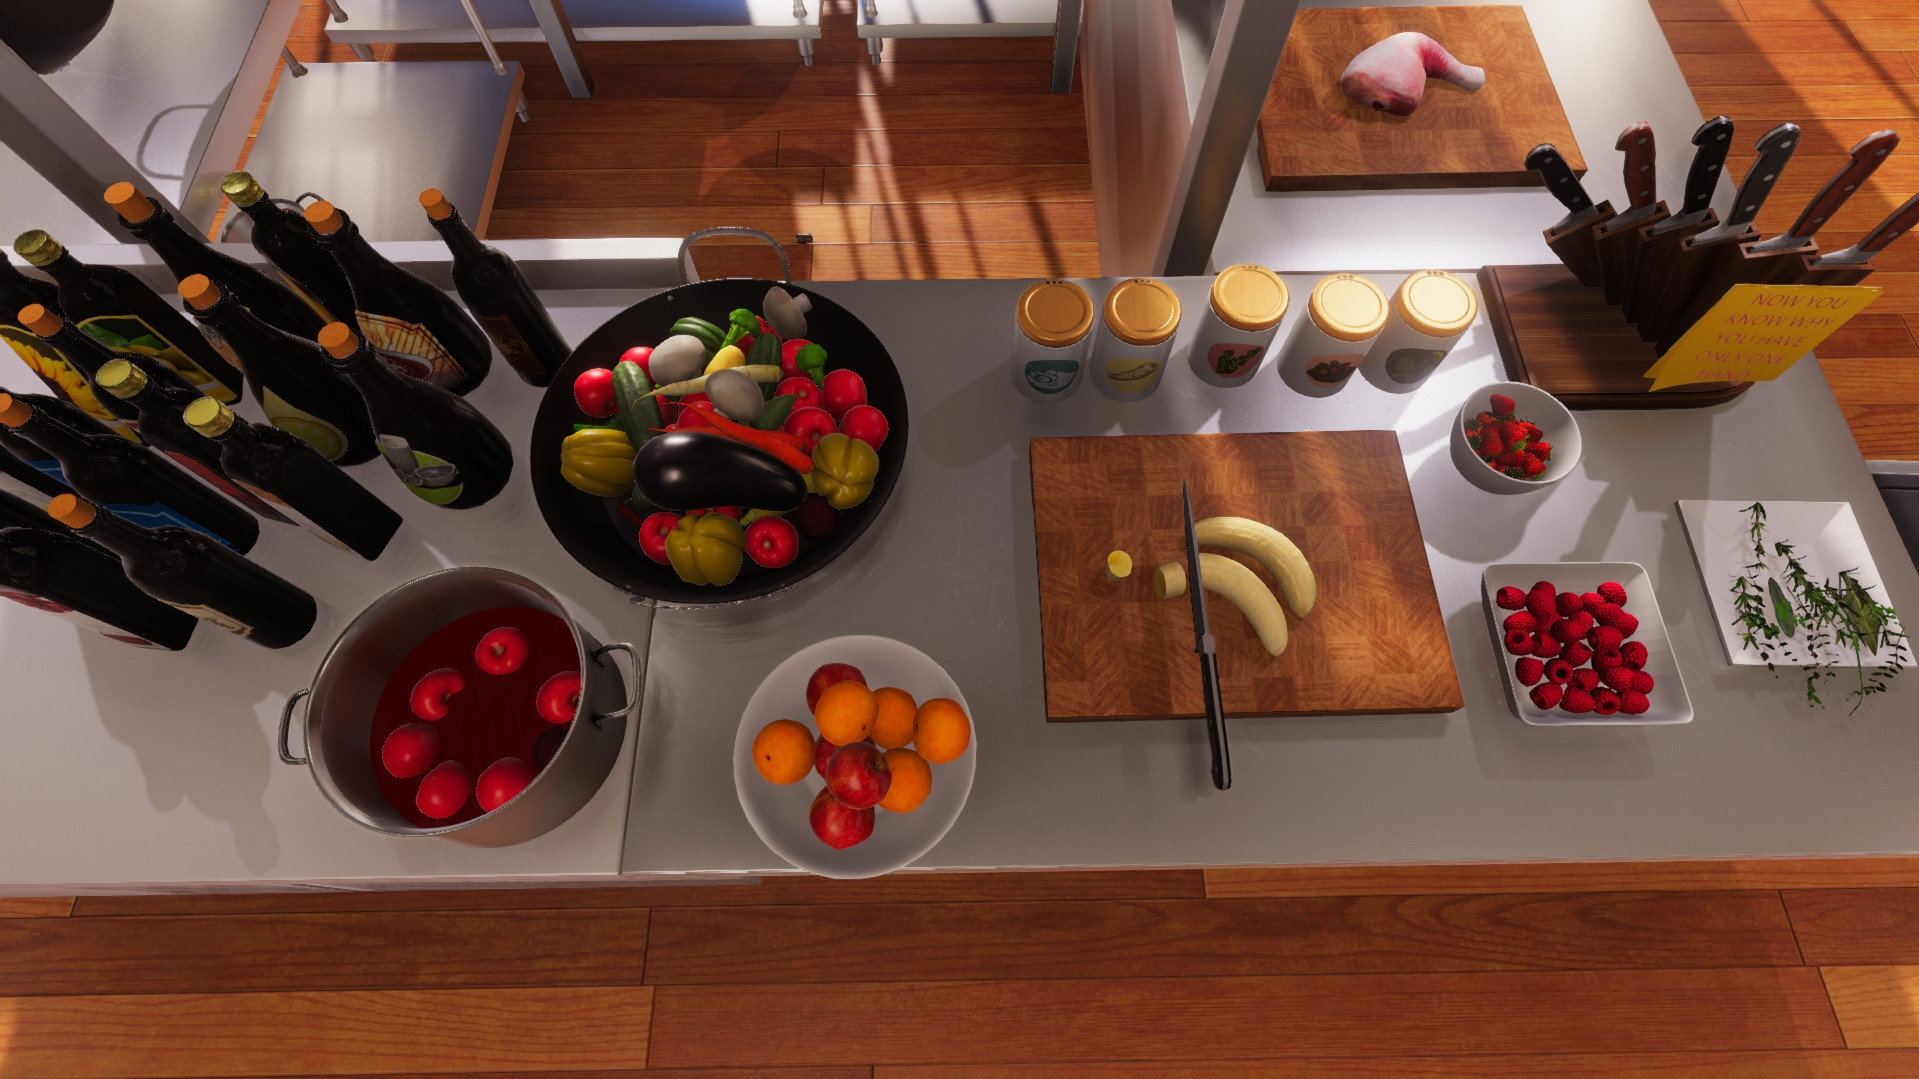 Video game food still looks like hideous plastic toys even in 2019. I think we know where Nvidia need to focus their efforts.